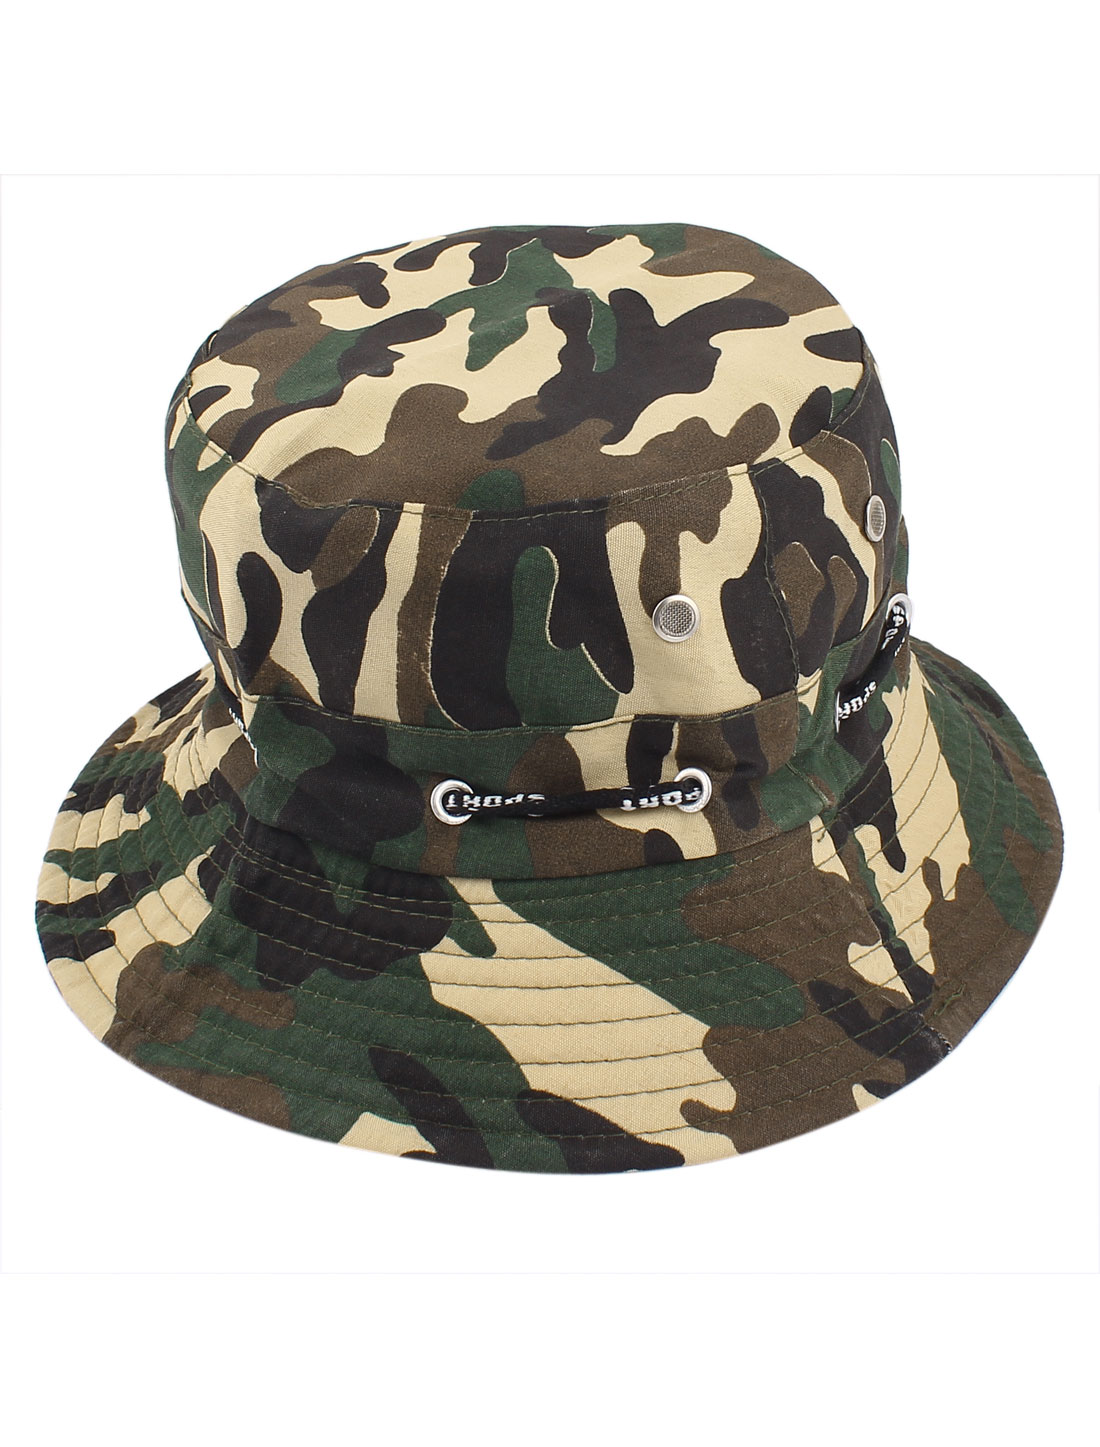 Men Women Unisex Camouflage Pattern Adjustable Strap Outdoor Fishing Bucket Cap Hat Army Green